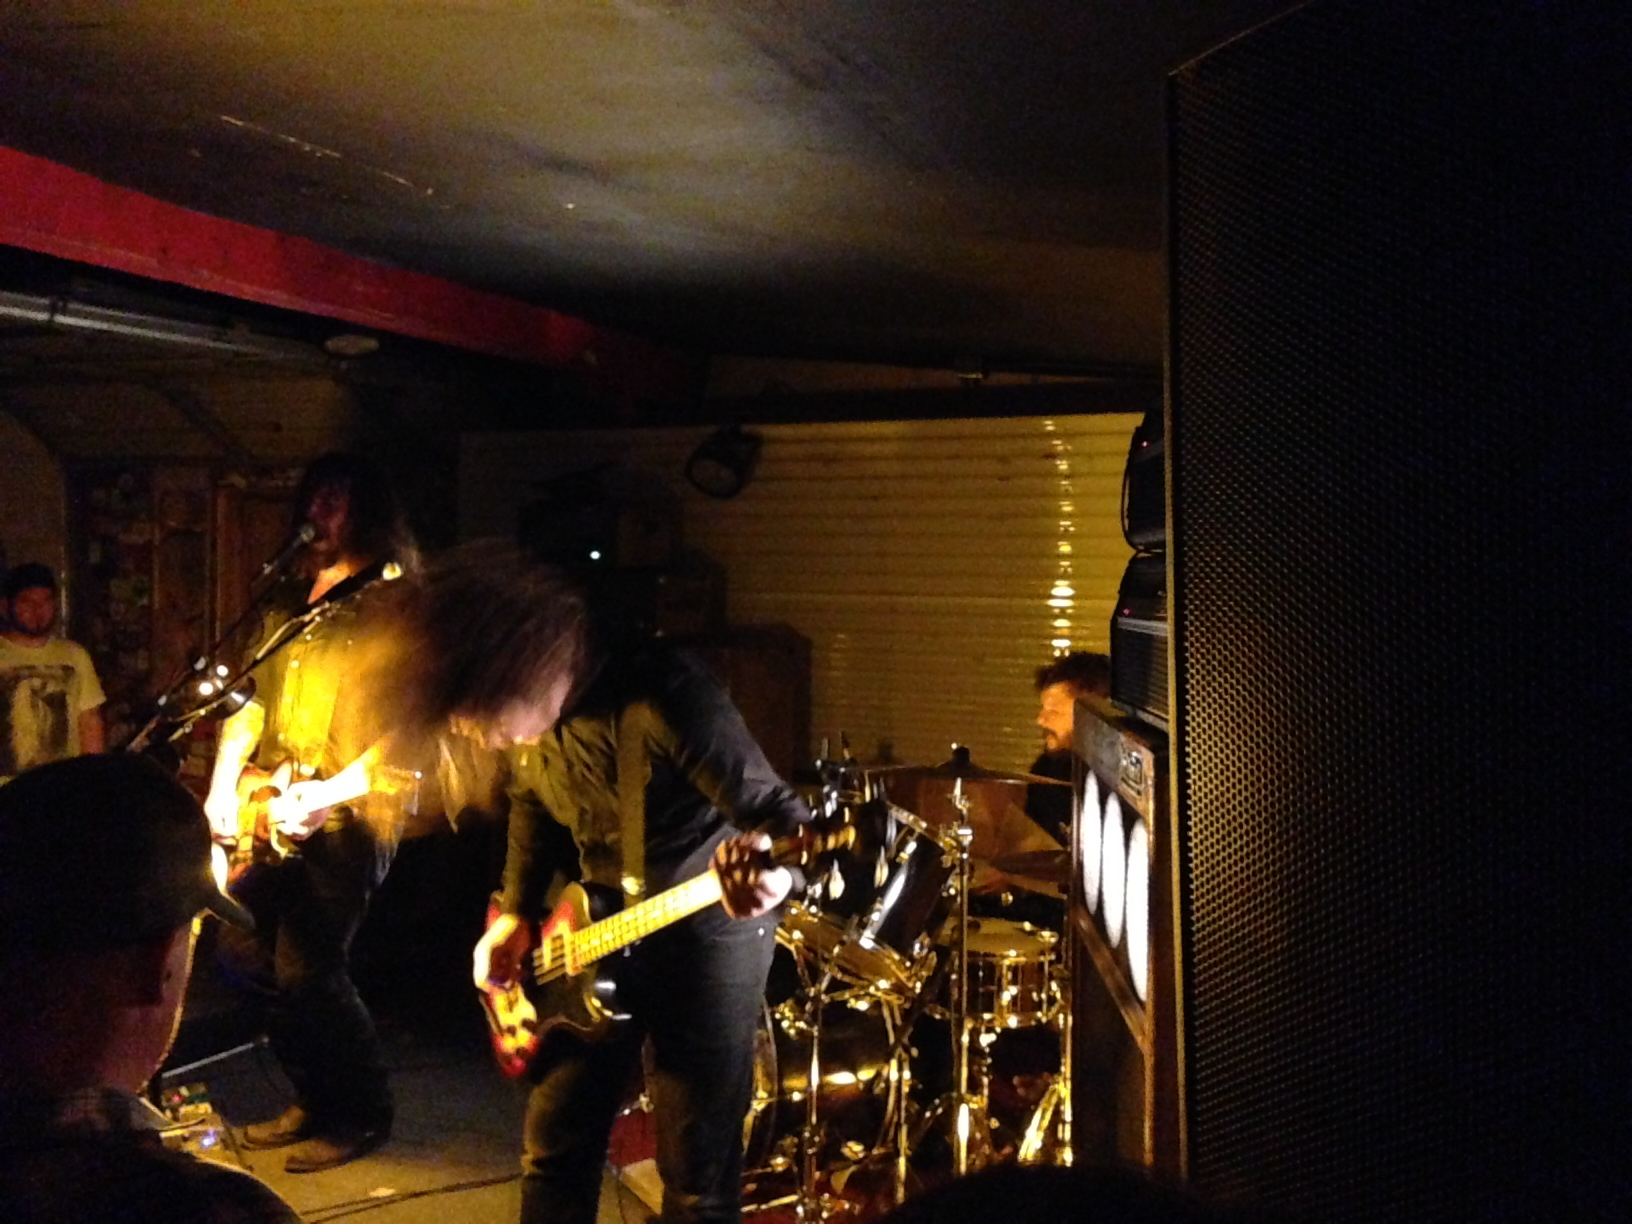 Young Widows @ Kilby Court, Salt Lake City, UT June 21st 2014 ...